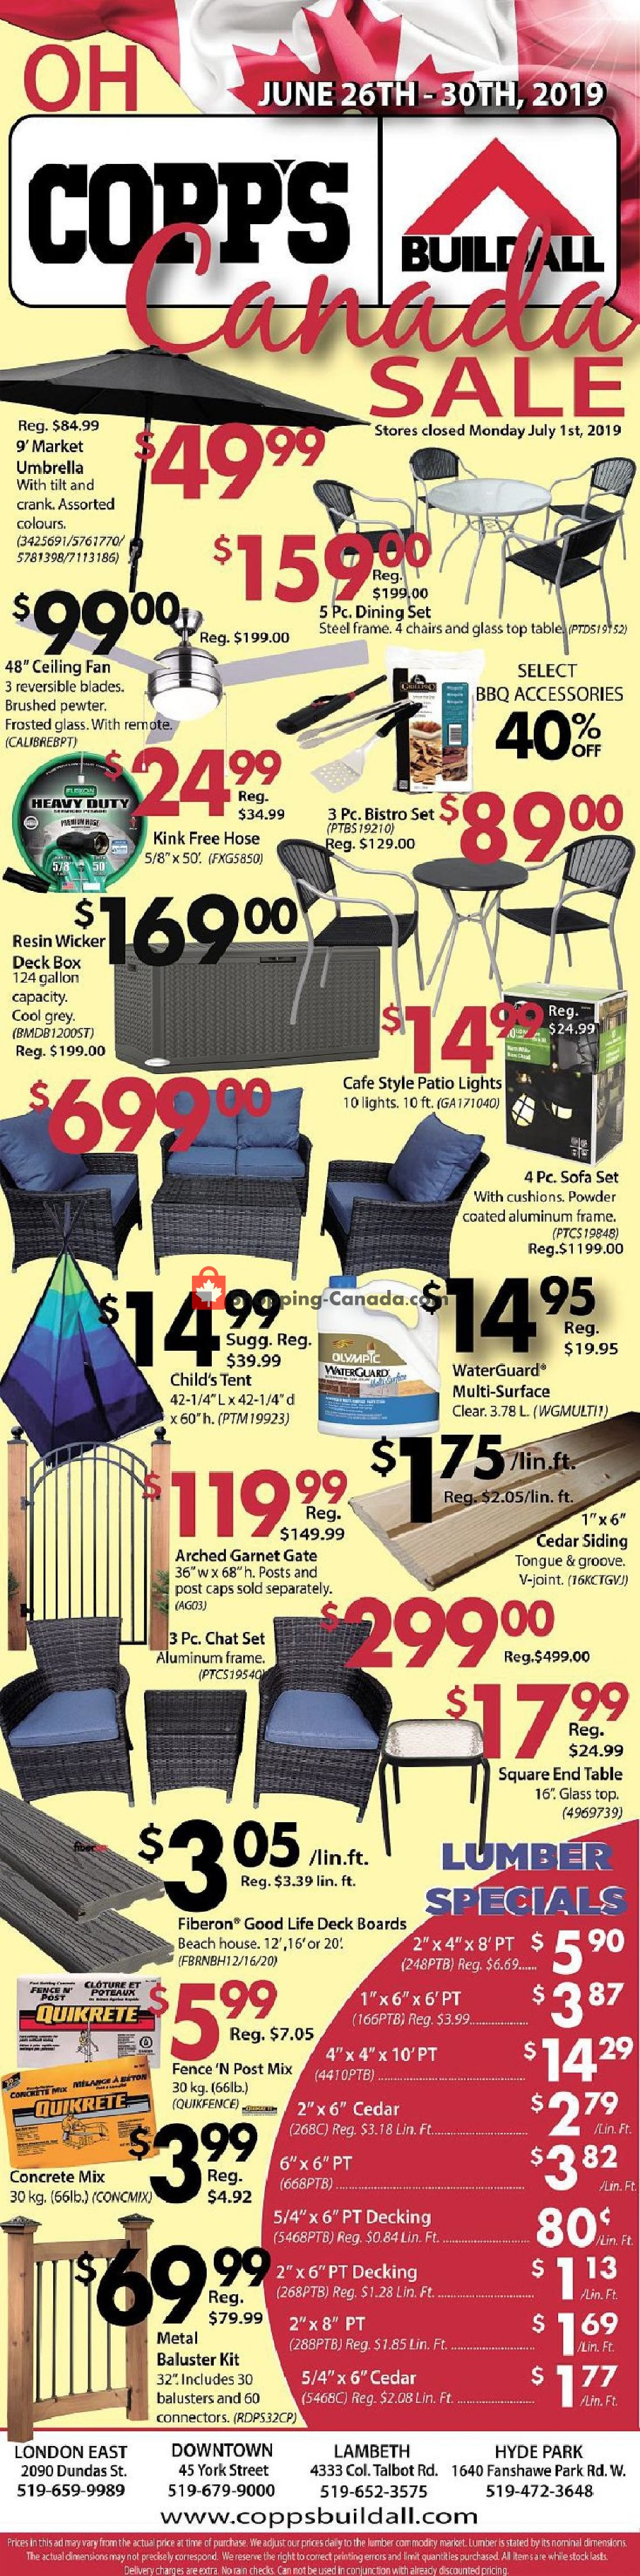 Flyer COPP's Buildall Canada - from Wednesday June 26, 2019 to Sunday June 30, 2019